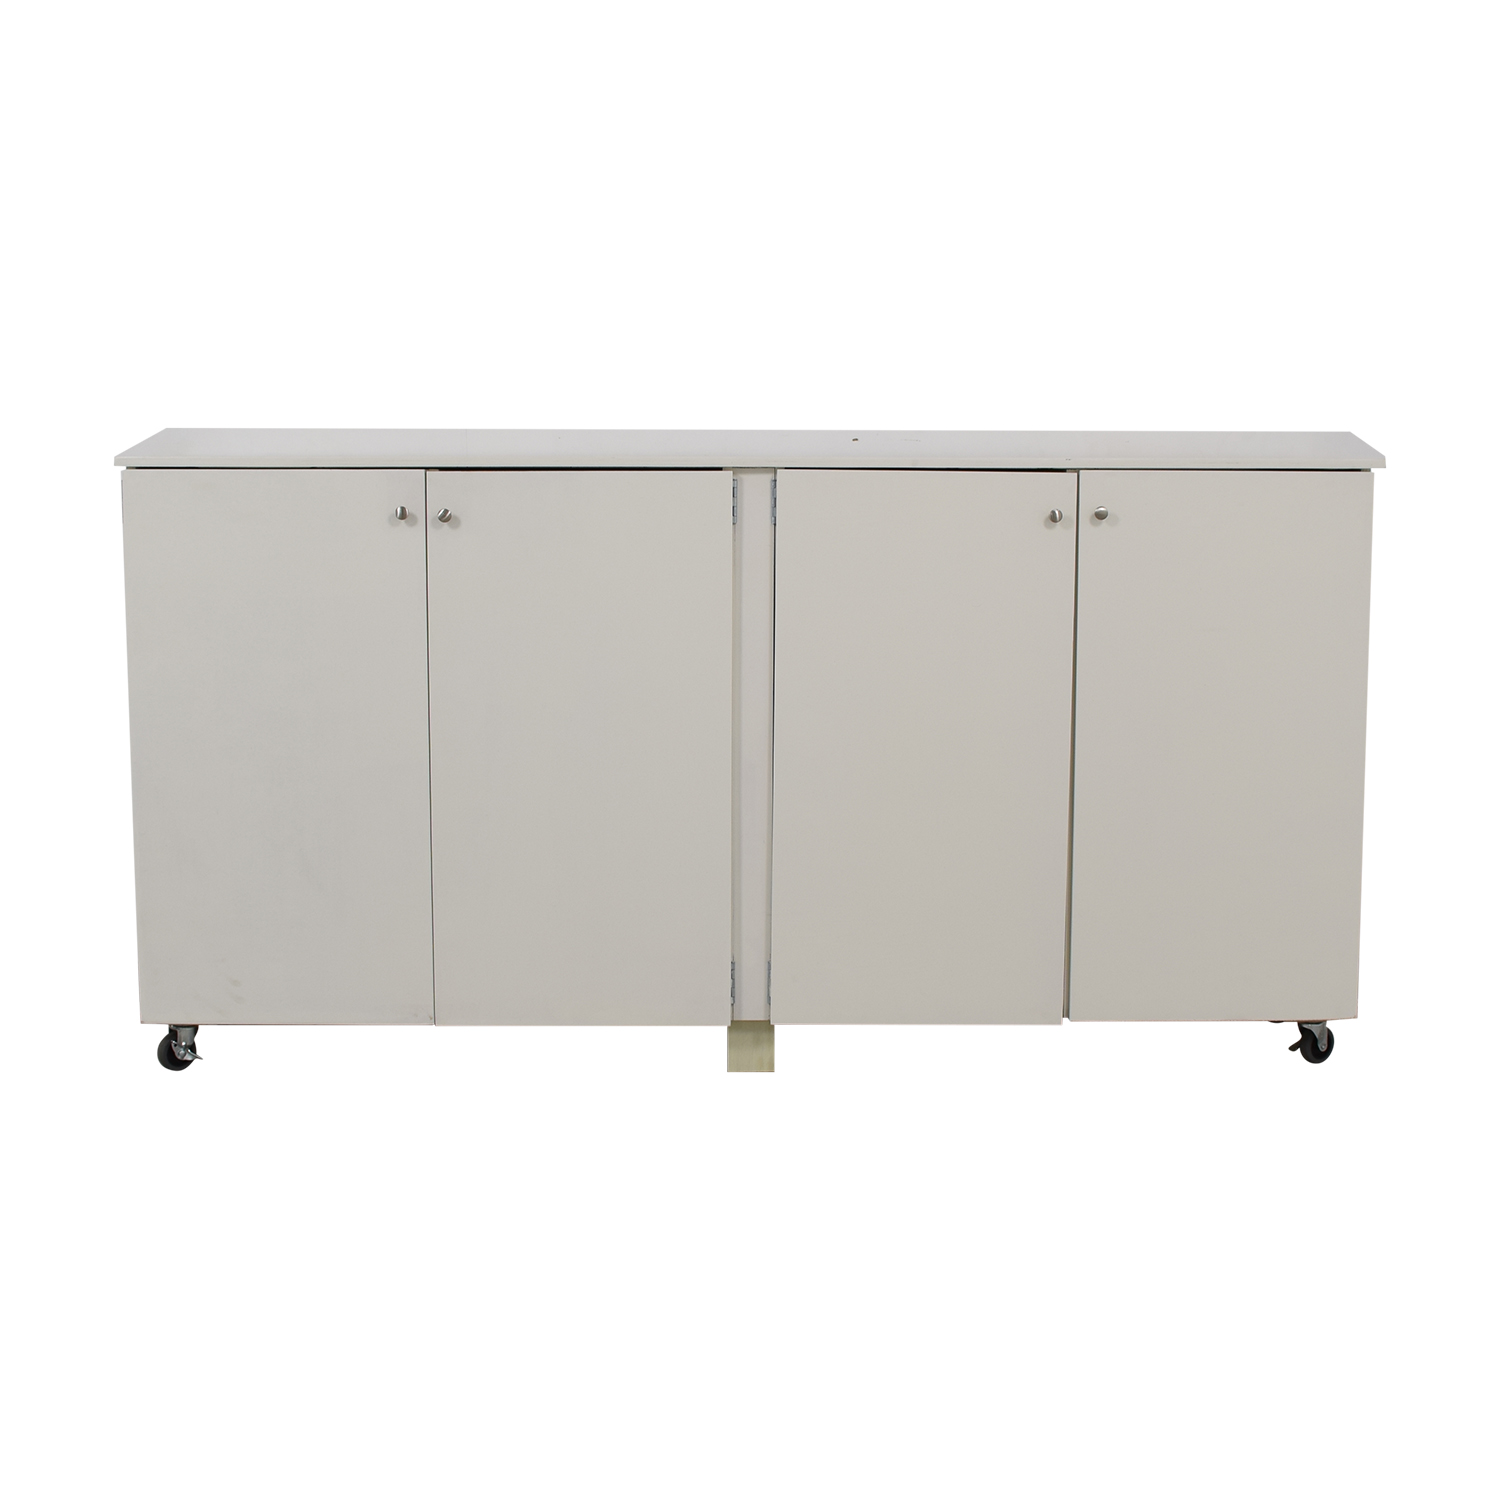 90 OFF  Custom White Cabinet Wardrobe with Hanging Rod